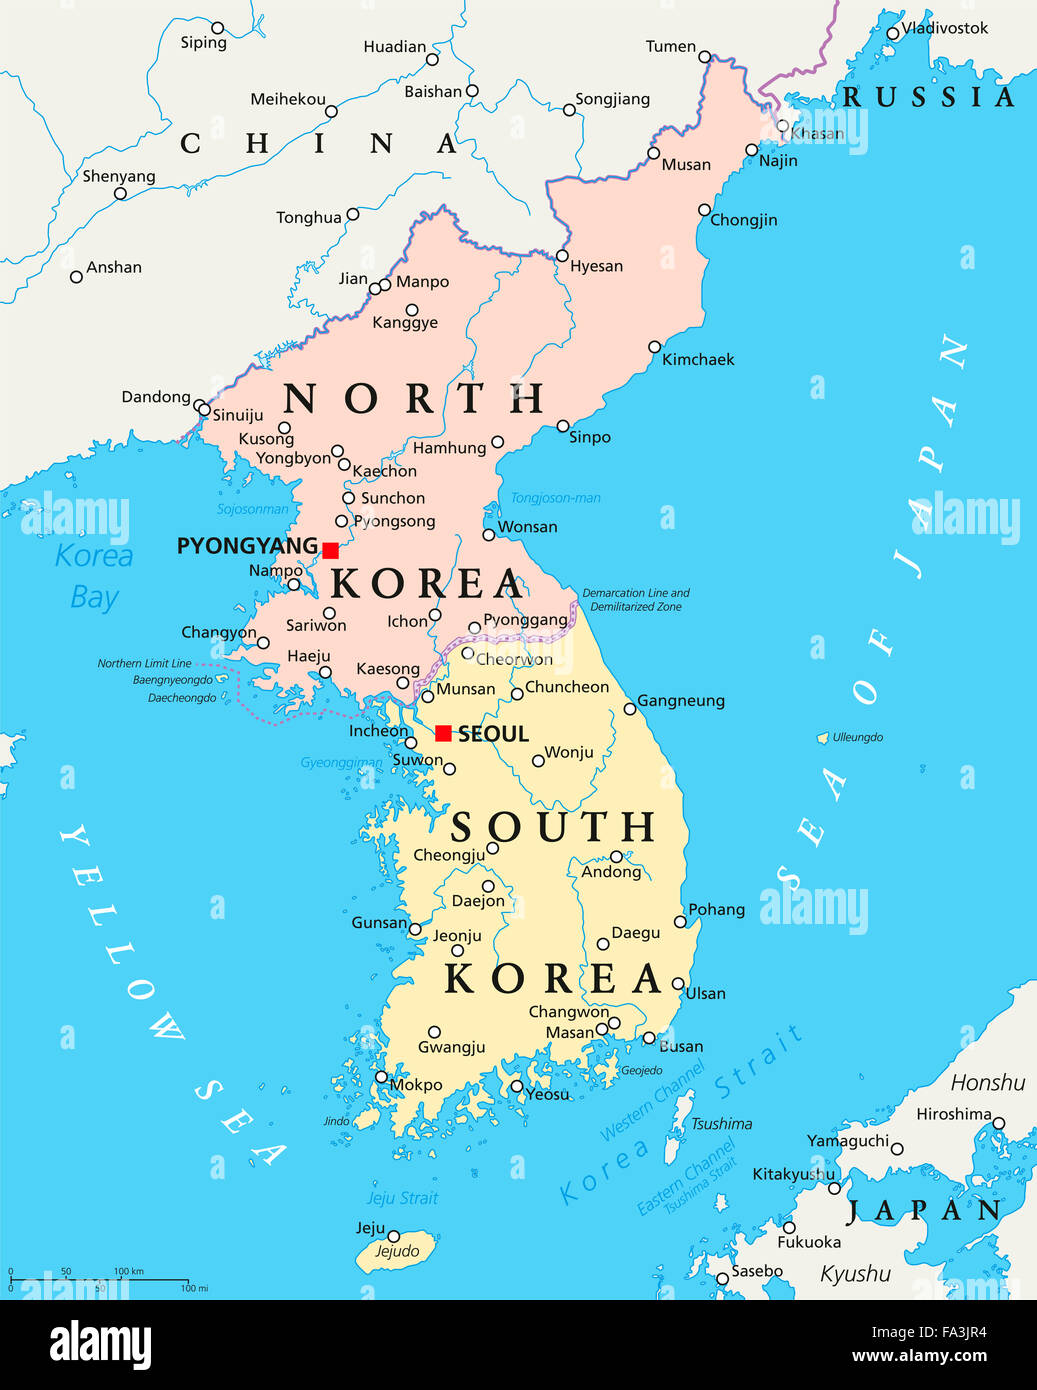 Grenze Nordkorea Südkorea Karte.North Korea South Korea Map Stockfotos North Korea South Korea Map